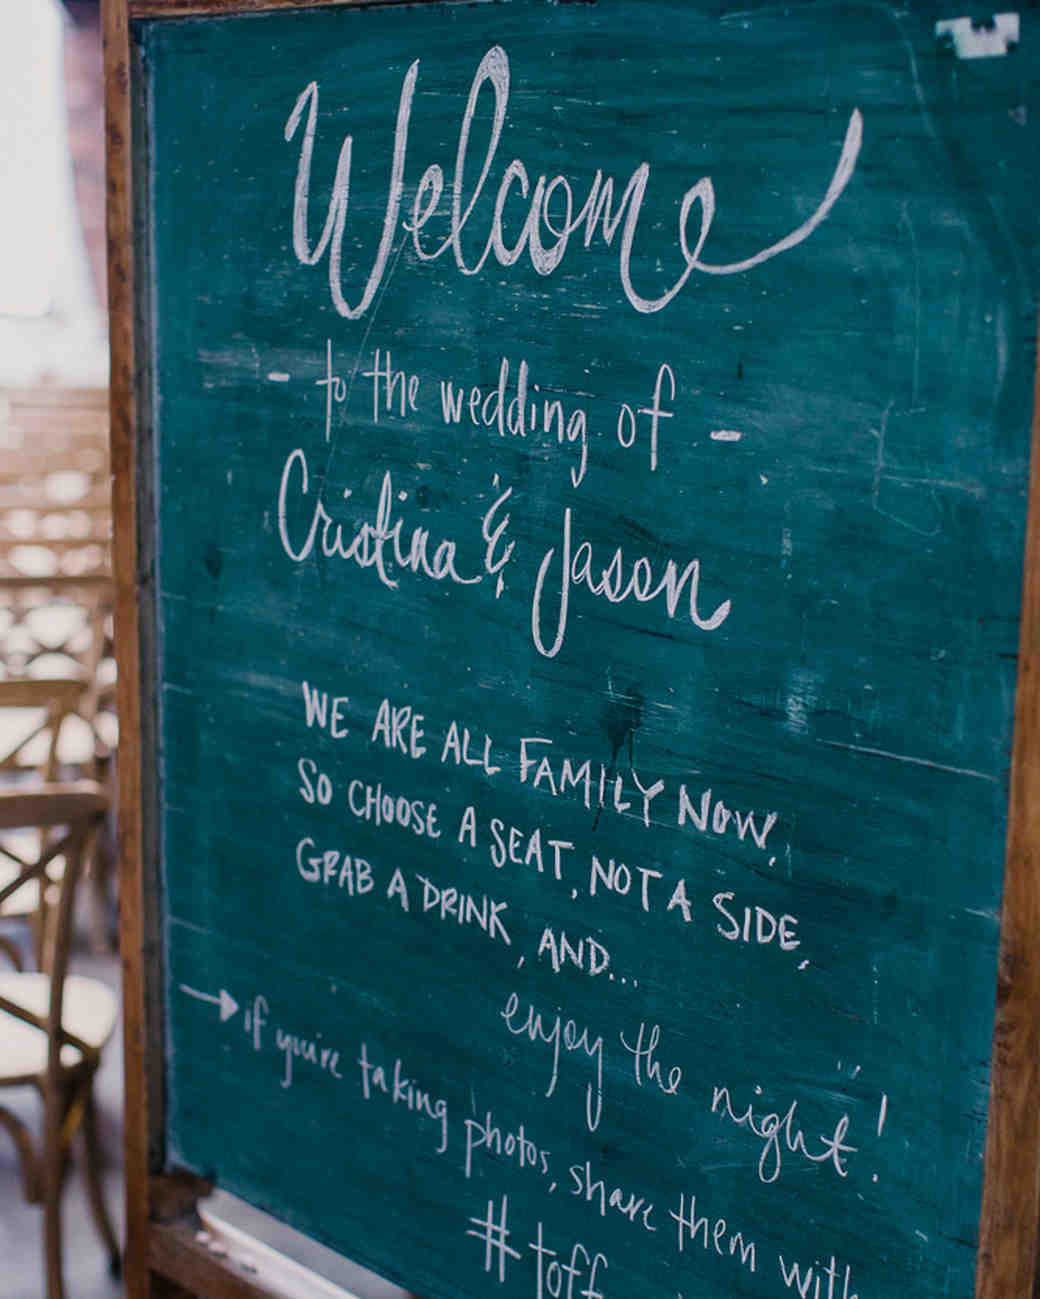 cristina-jason-wedding-signage-1338-s112017-0715.jpg